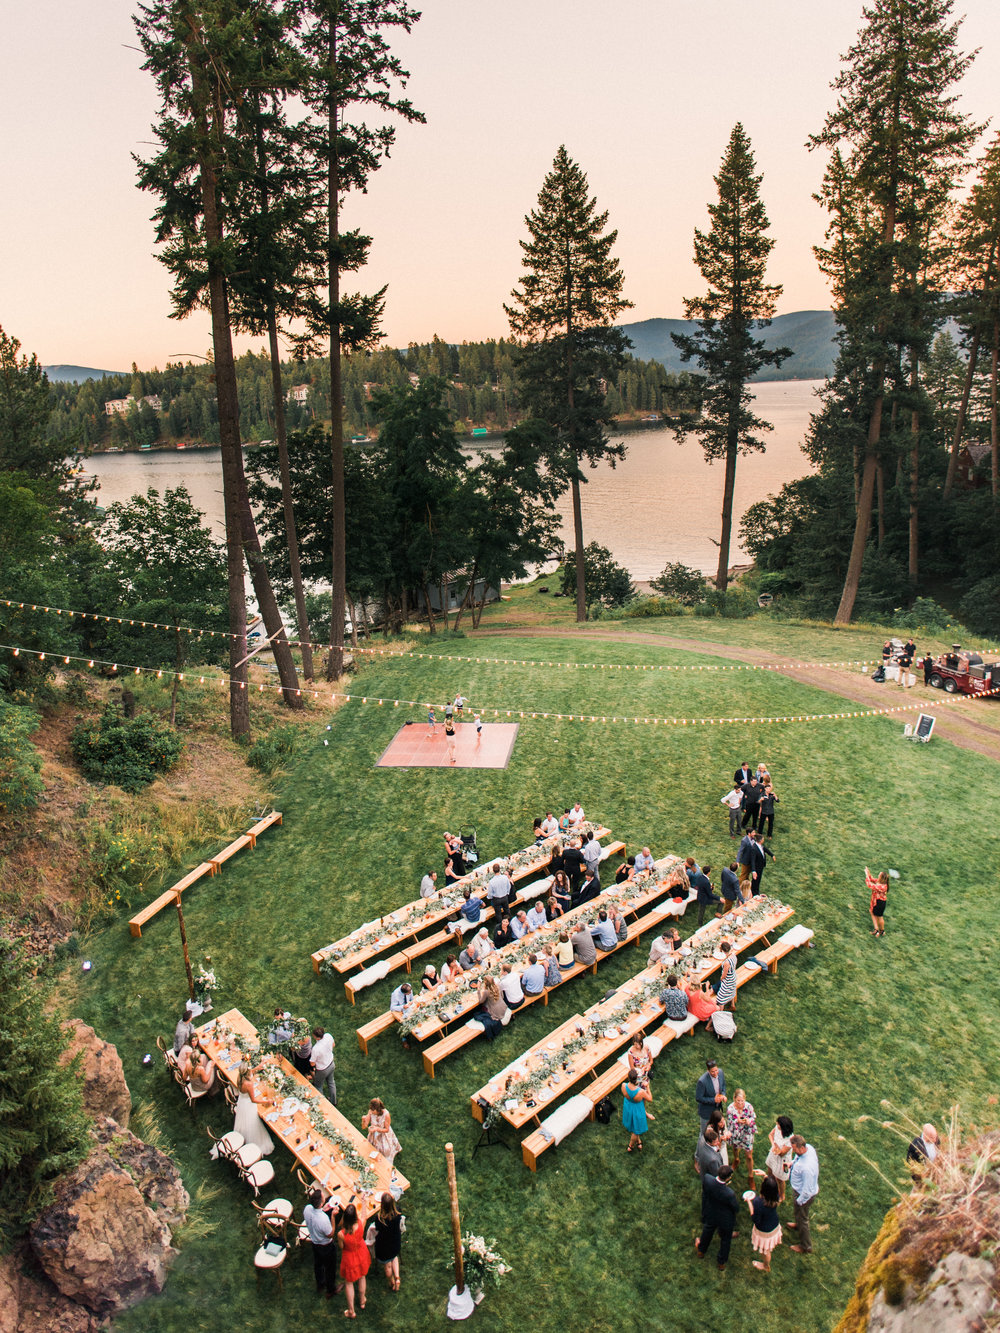 melcasey-hayden-lake-idaho-wedding-ryan-flynn-details-0125.JPG